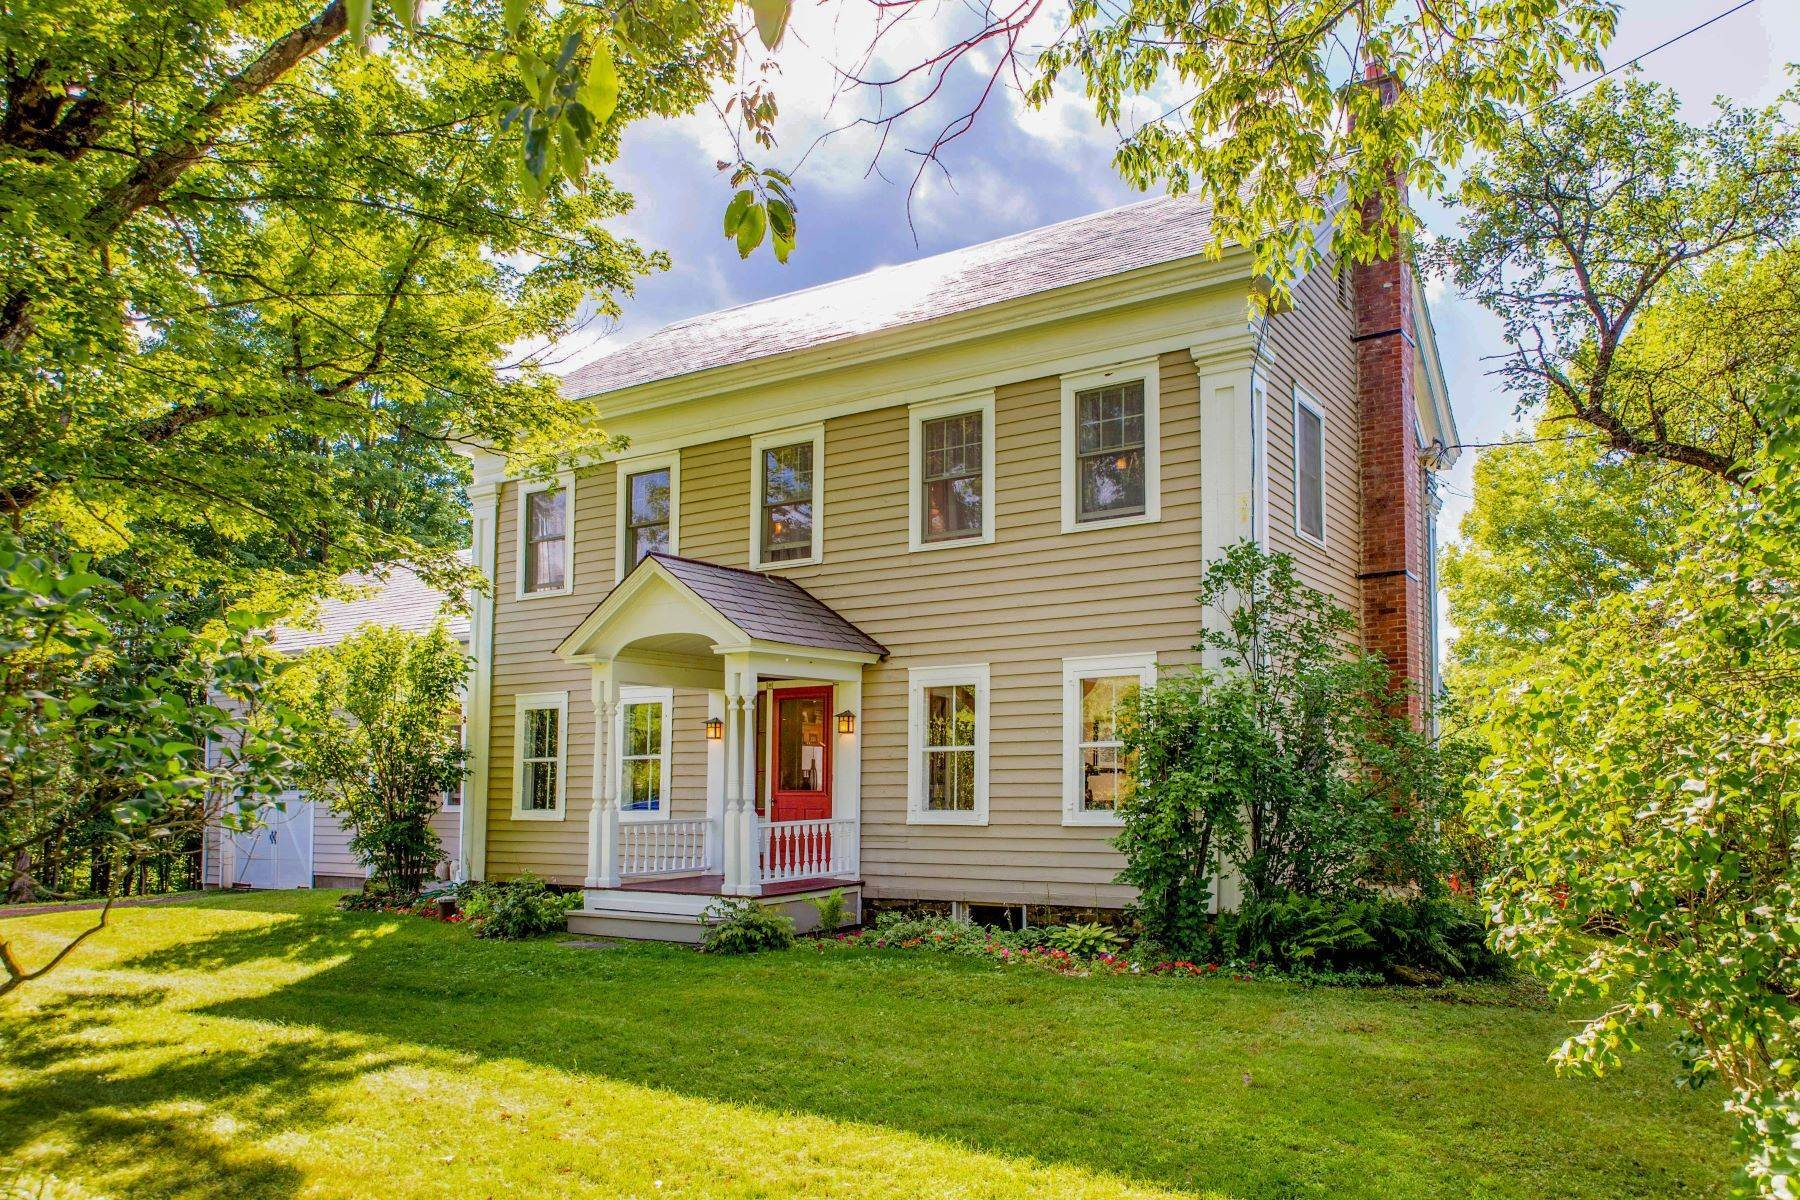 Single Family Homes for Sale at Beautiful Maintained McConell Homestead Farmhouse 779 County Route 31 Granville, New York 12832 United States